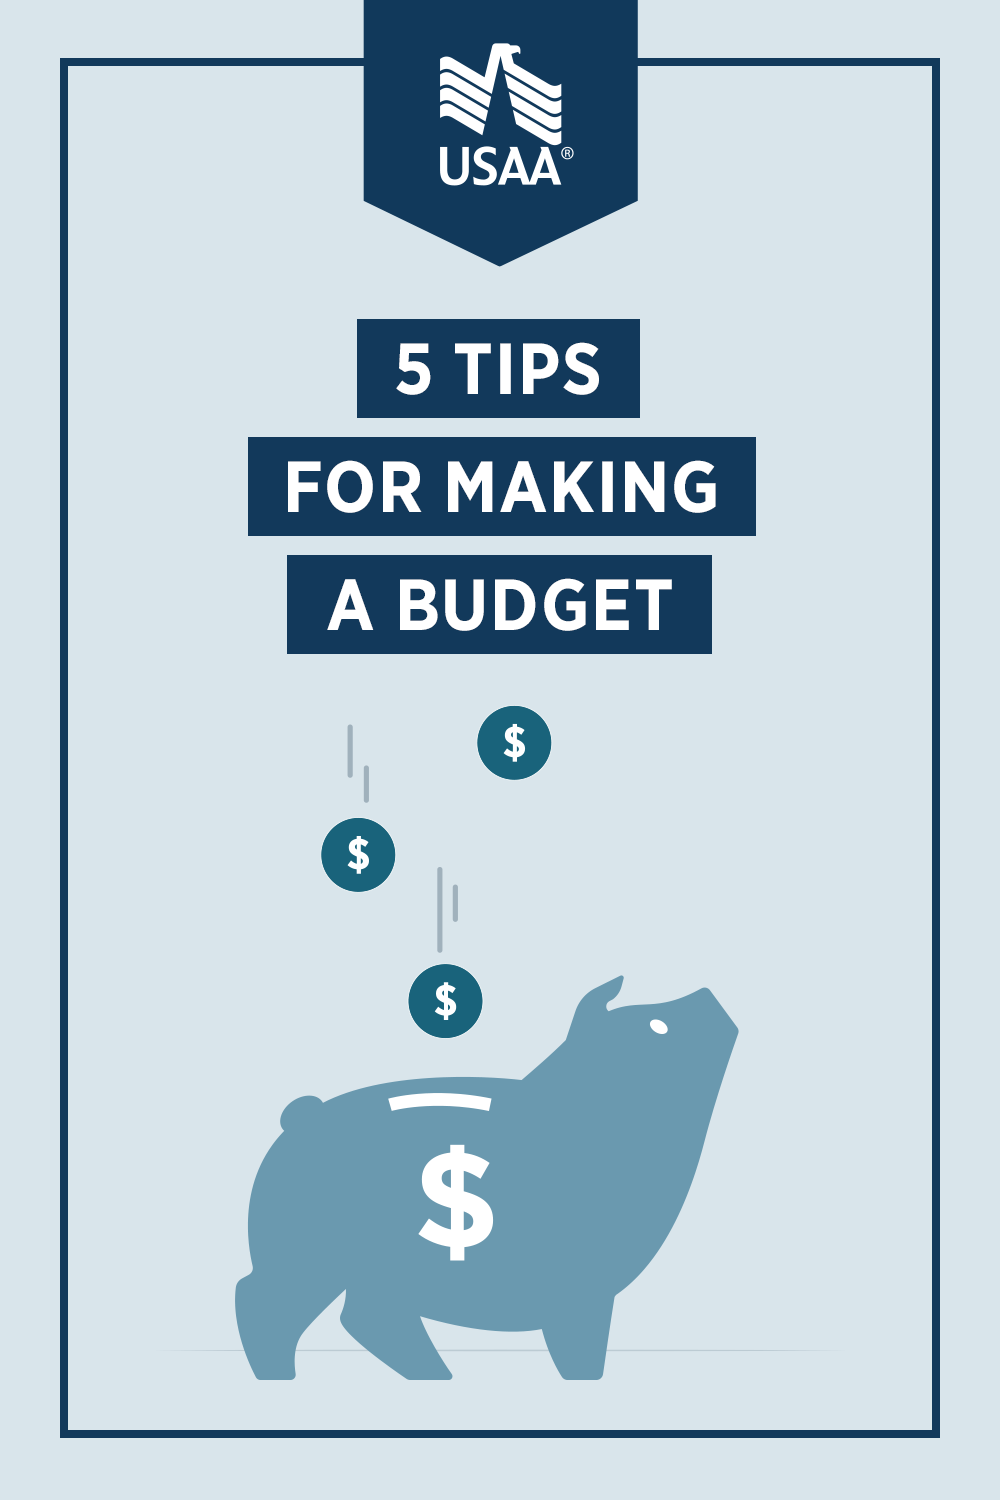 Julyao4 Budgetpiggy Budgeting Create A Budget Making A Budget